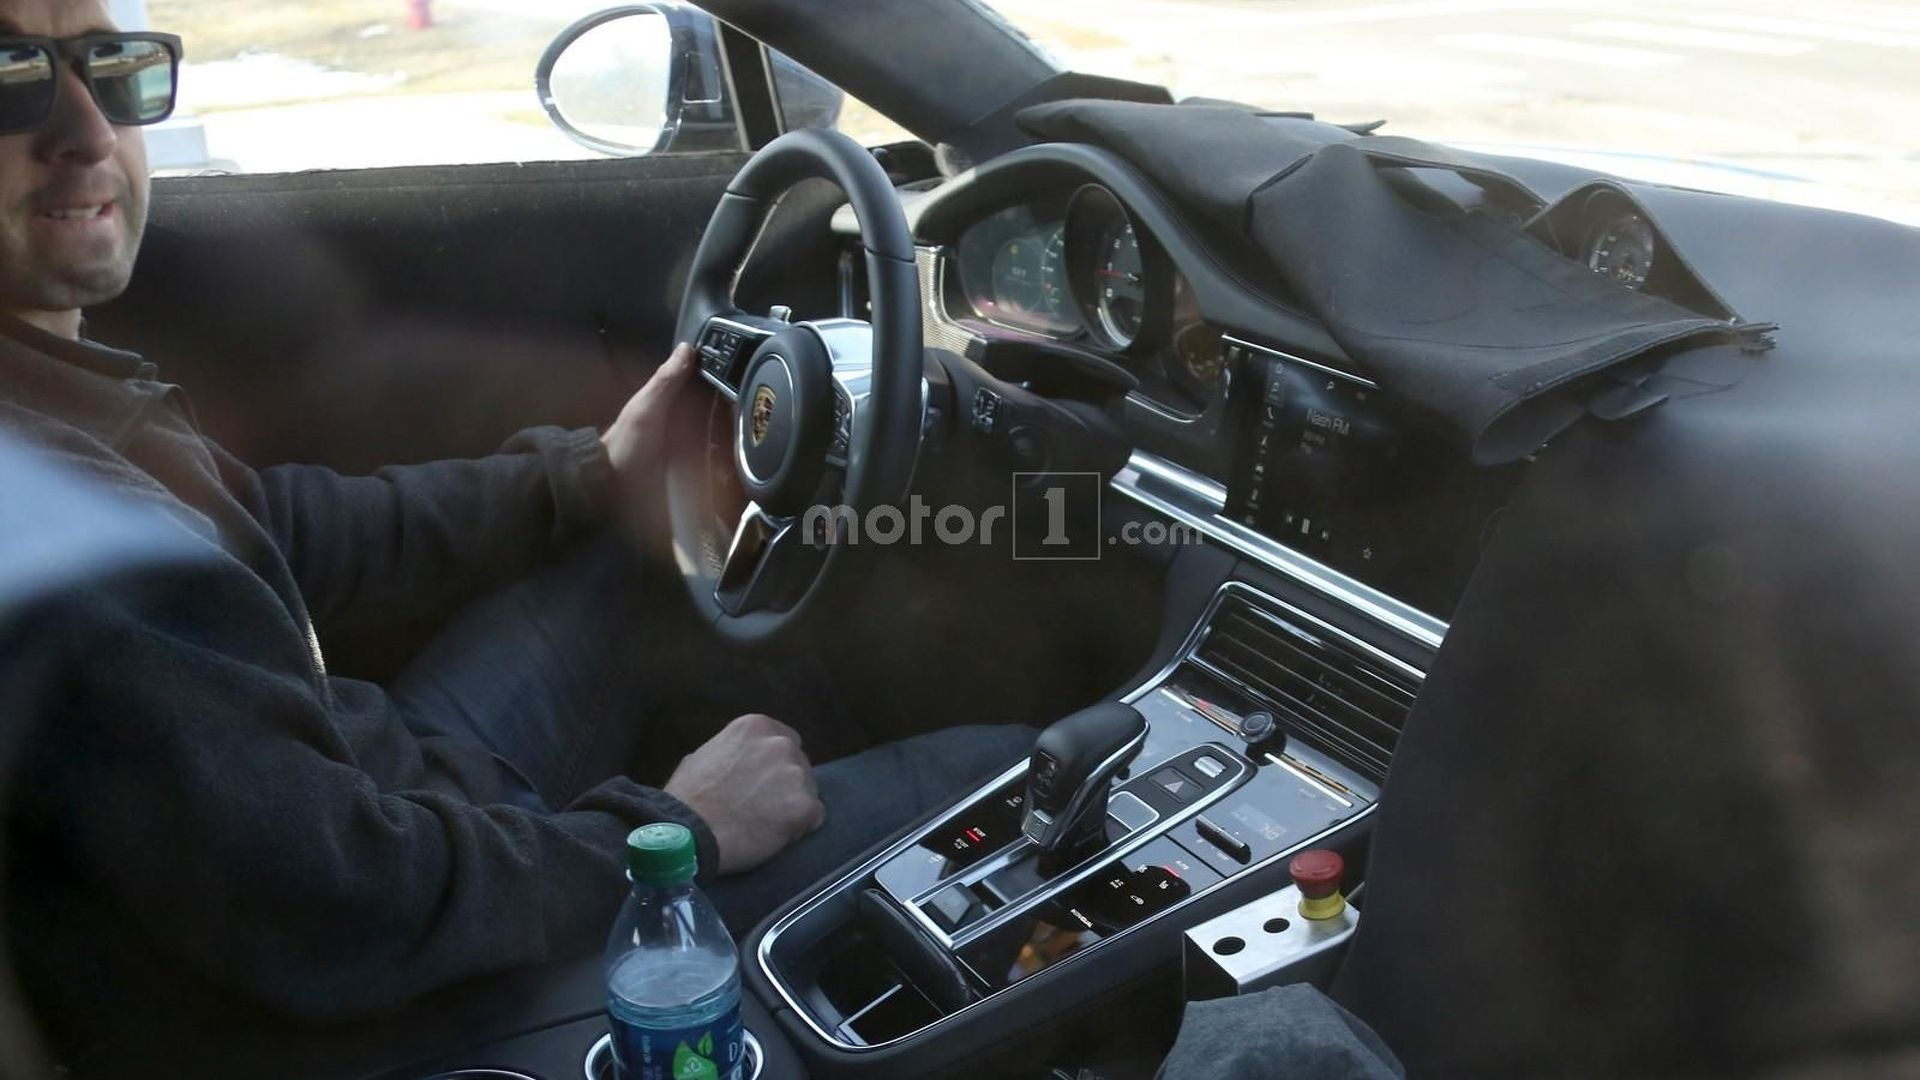 2017 Porsche Panamera Spied With New Capacitive Touch Controls